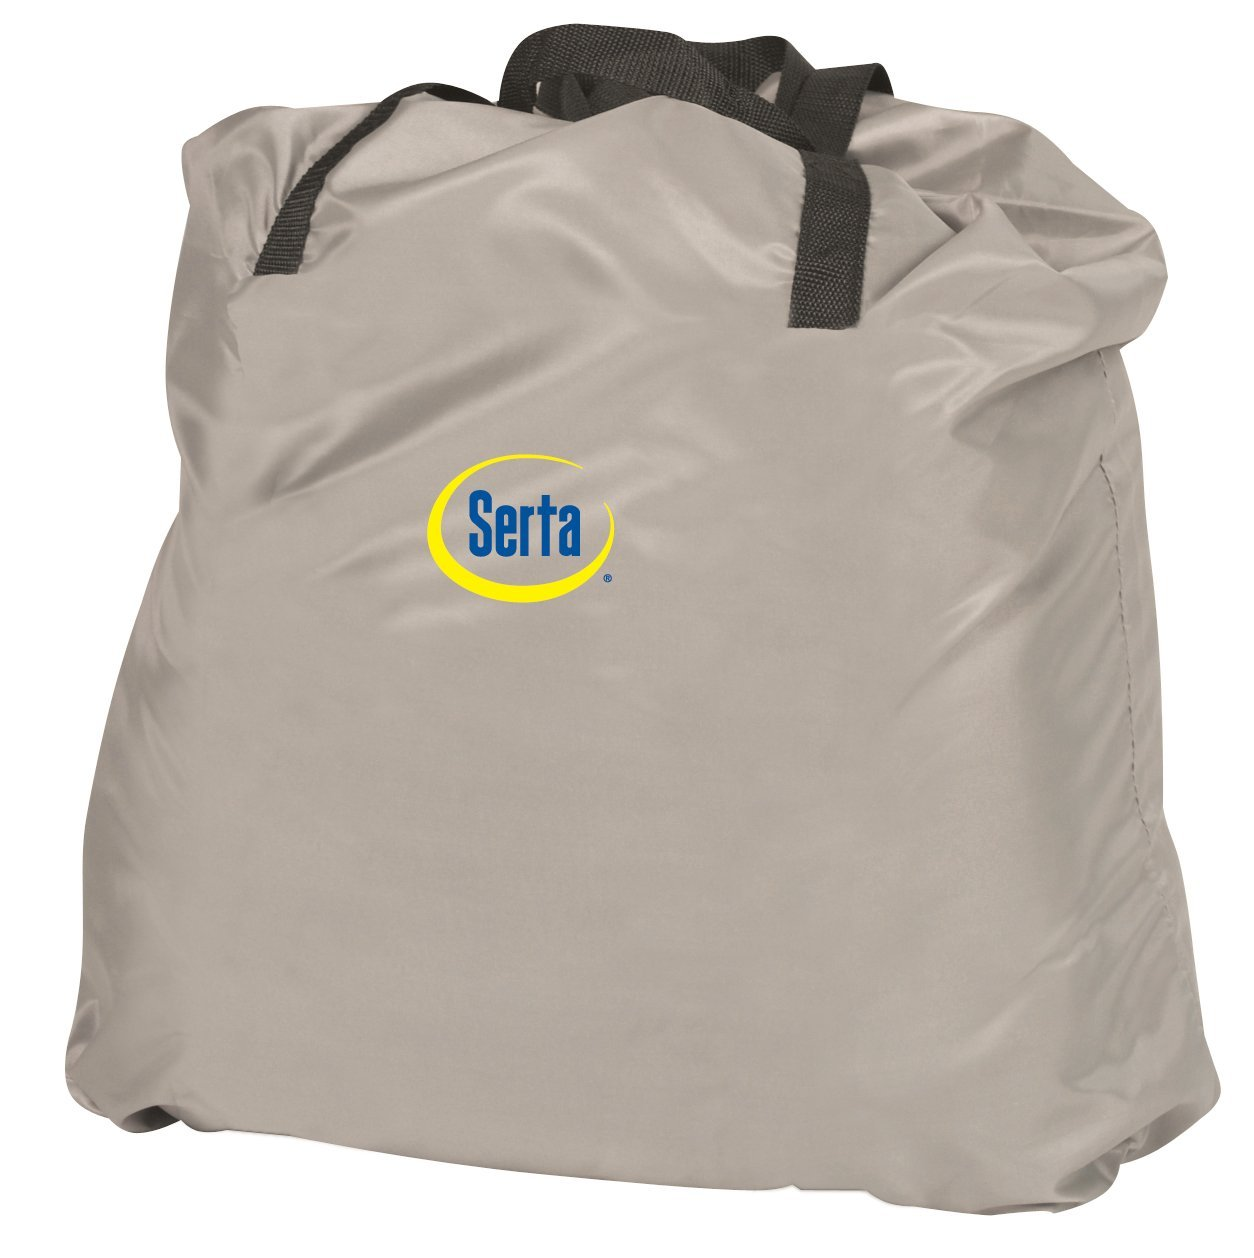 Serta Raised Airbed Carry Bag